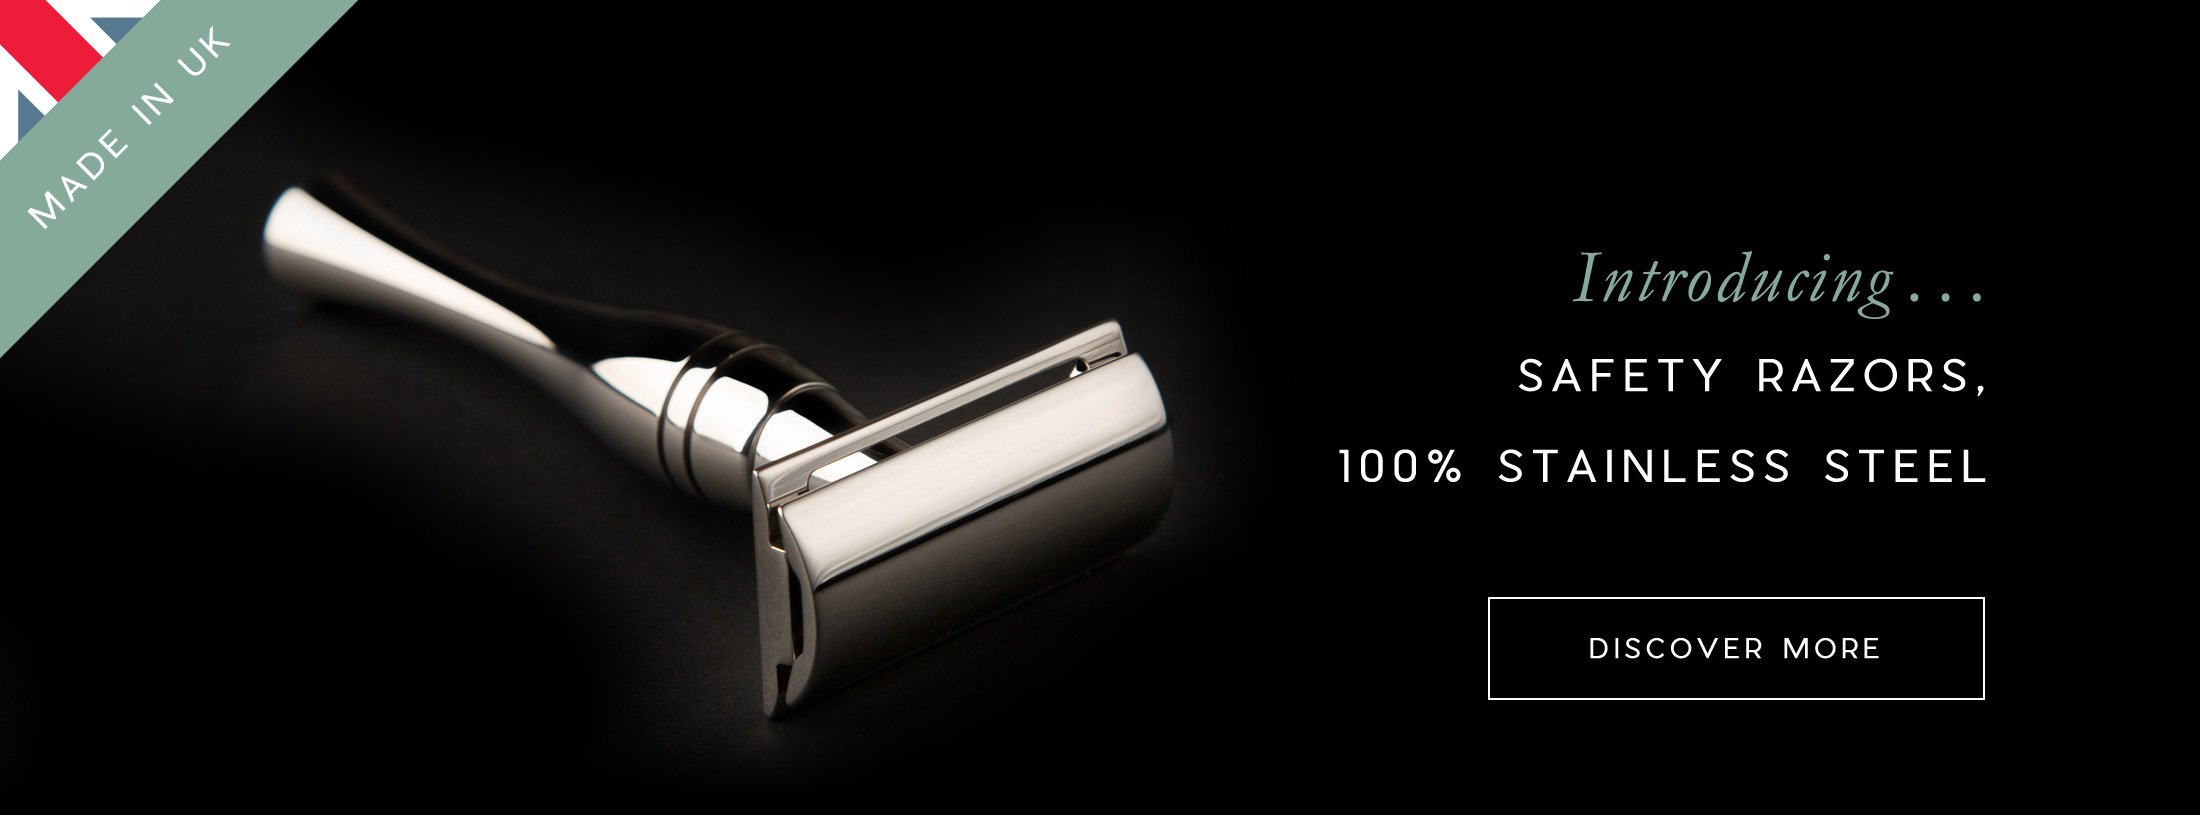 made in UK stainless steel safety razors